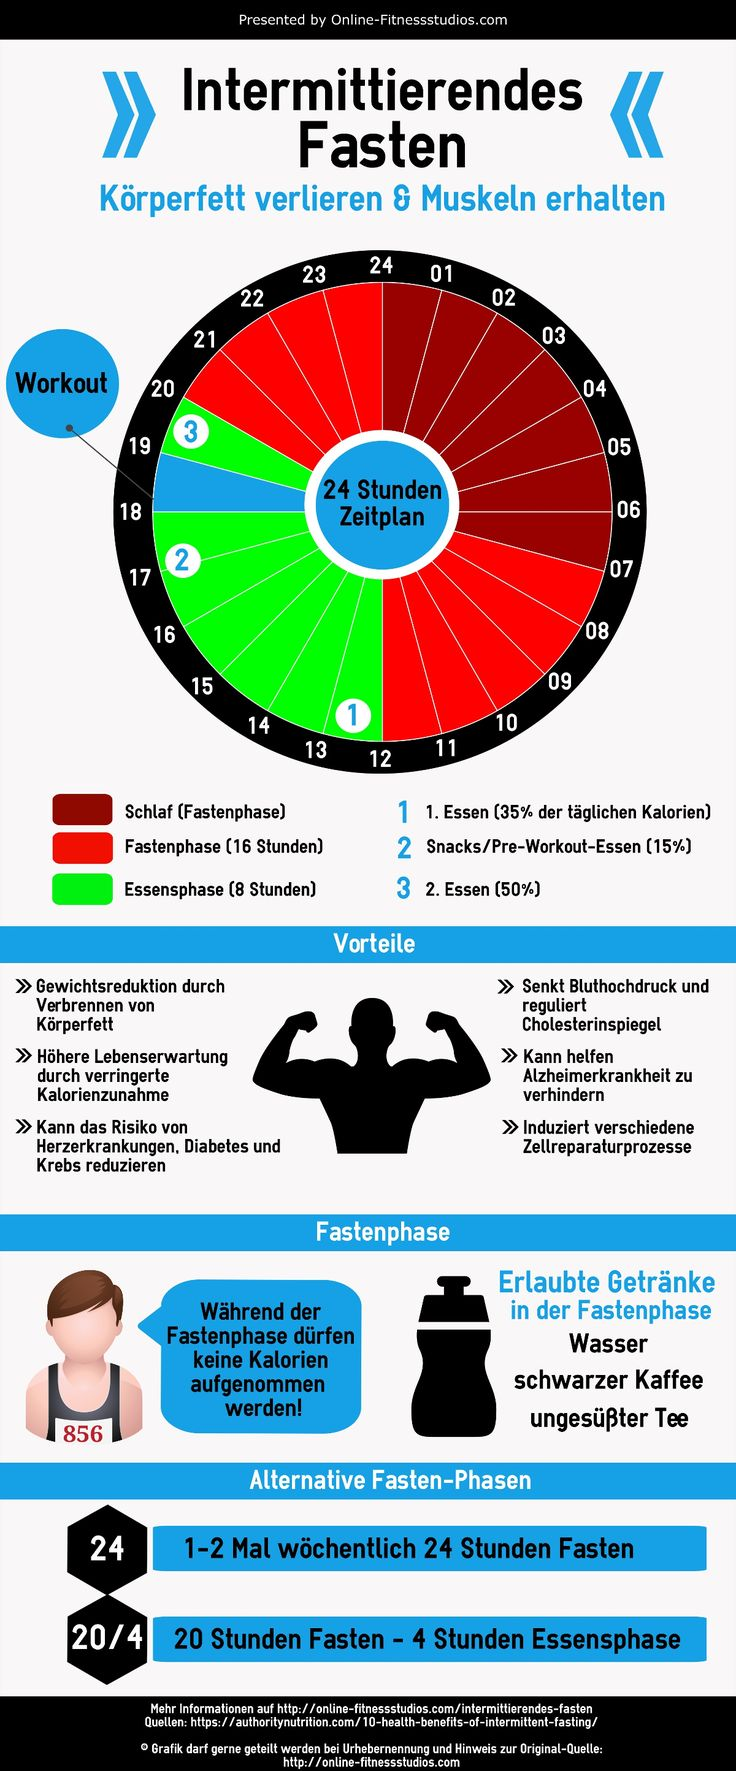 Intermittierendes Fasten – der ultimative Guide